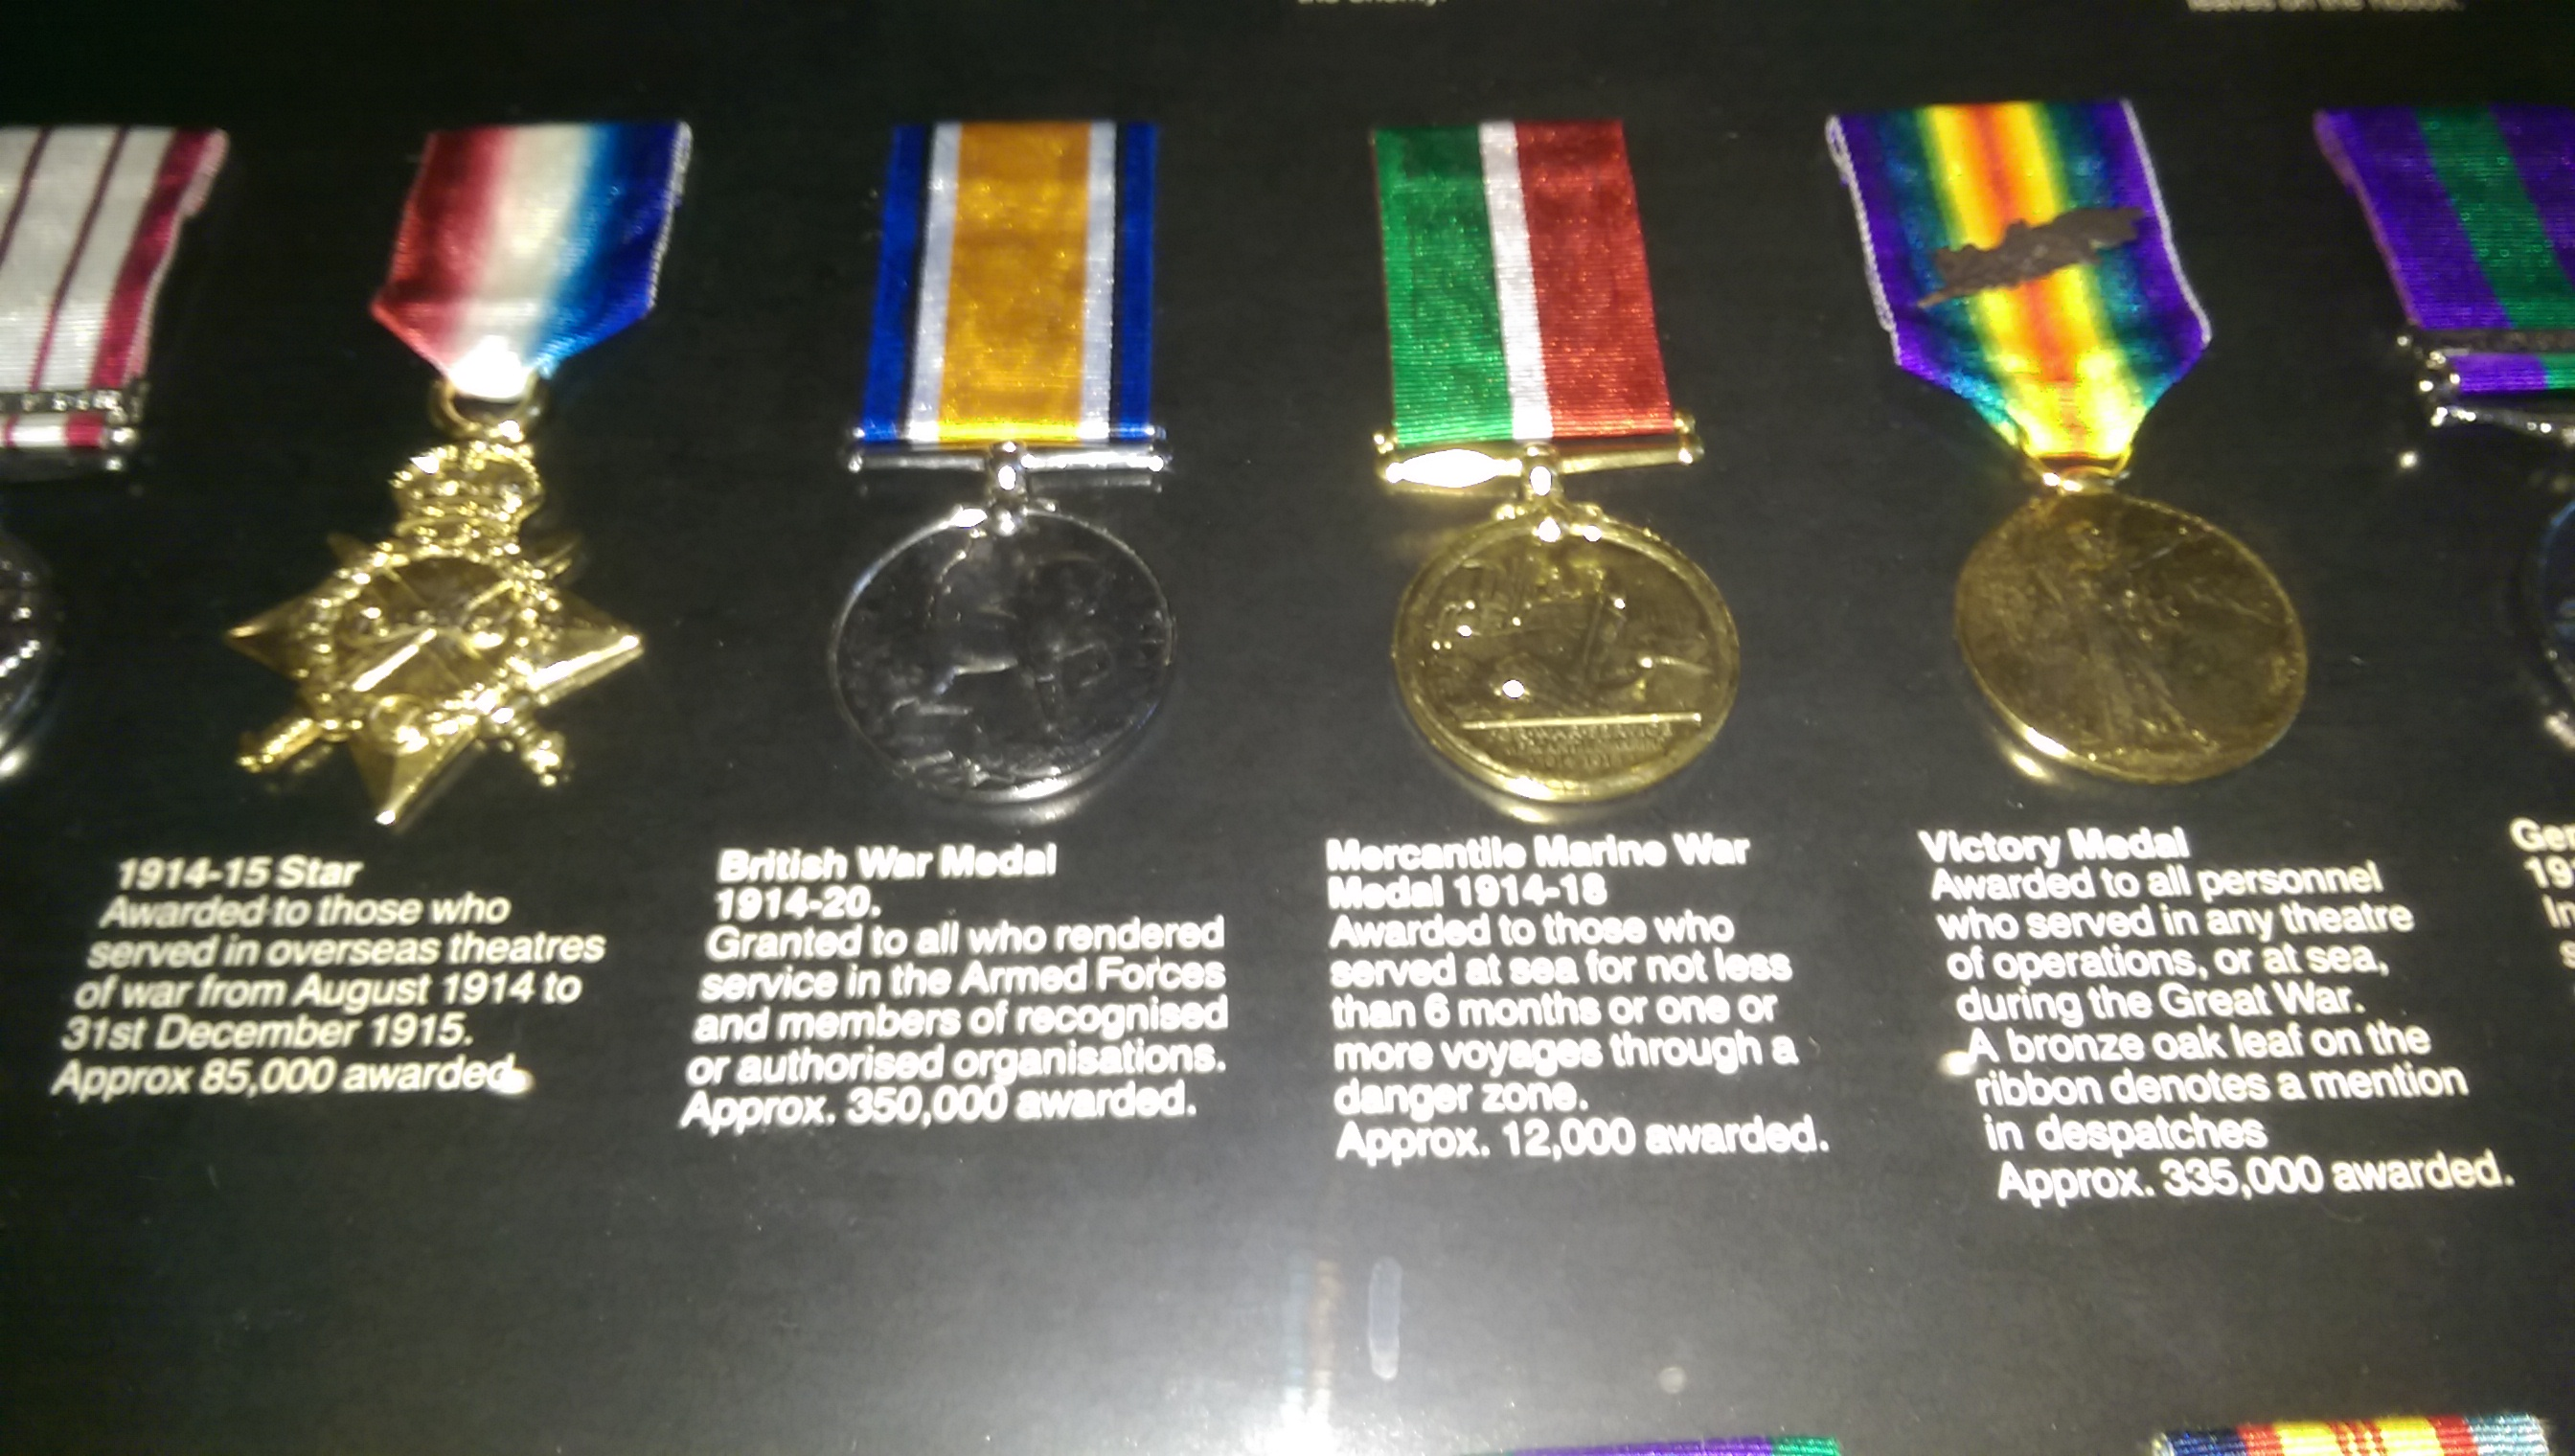 Clementinas medals ( photos of reproductions ) of originals she earnt during war time. Left to right